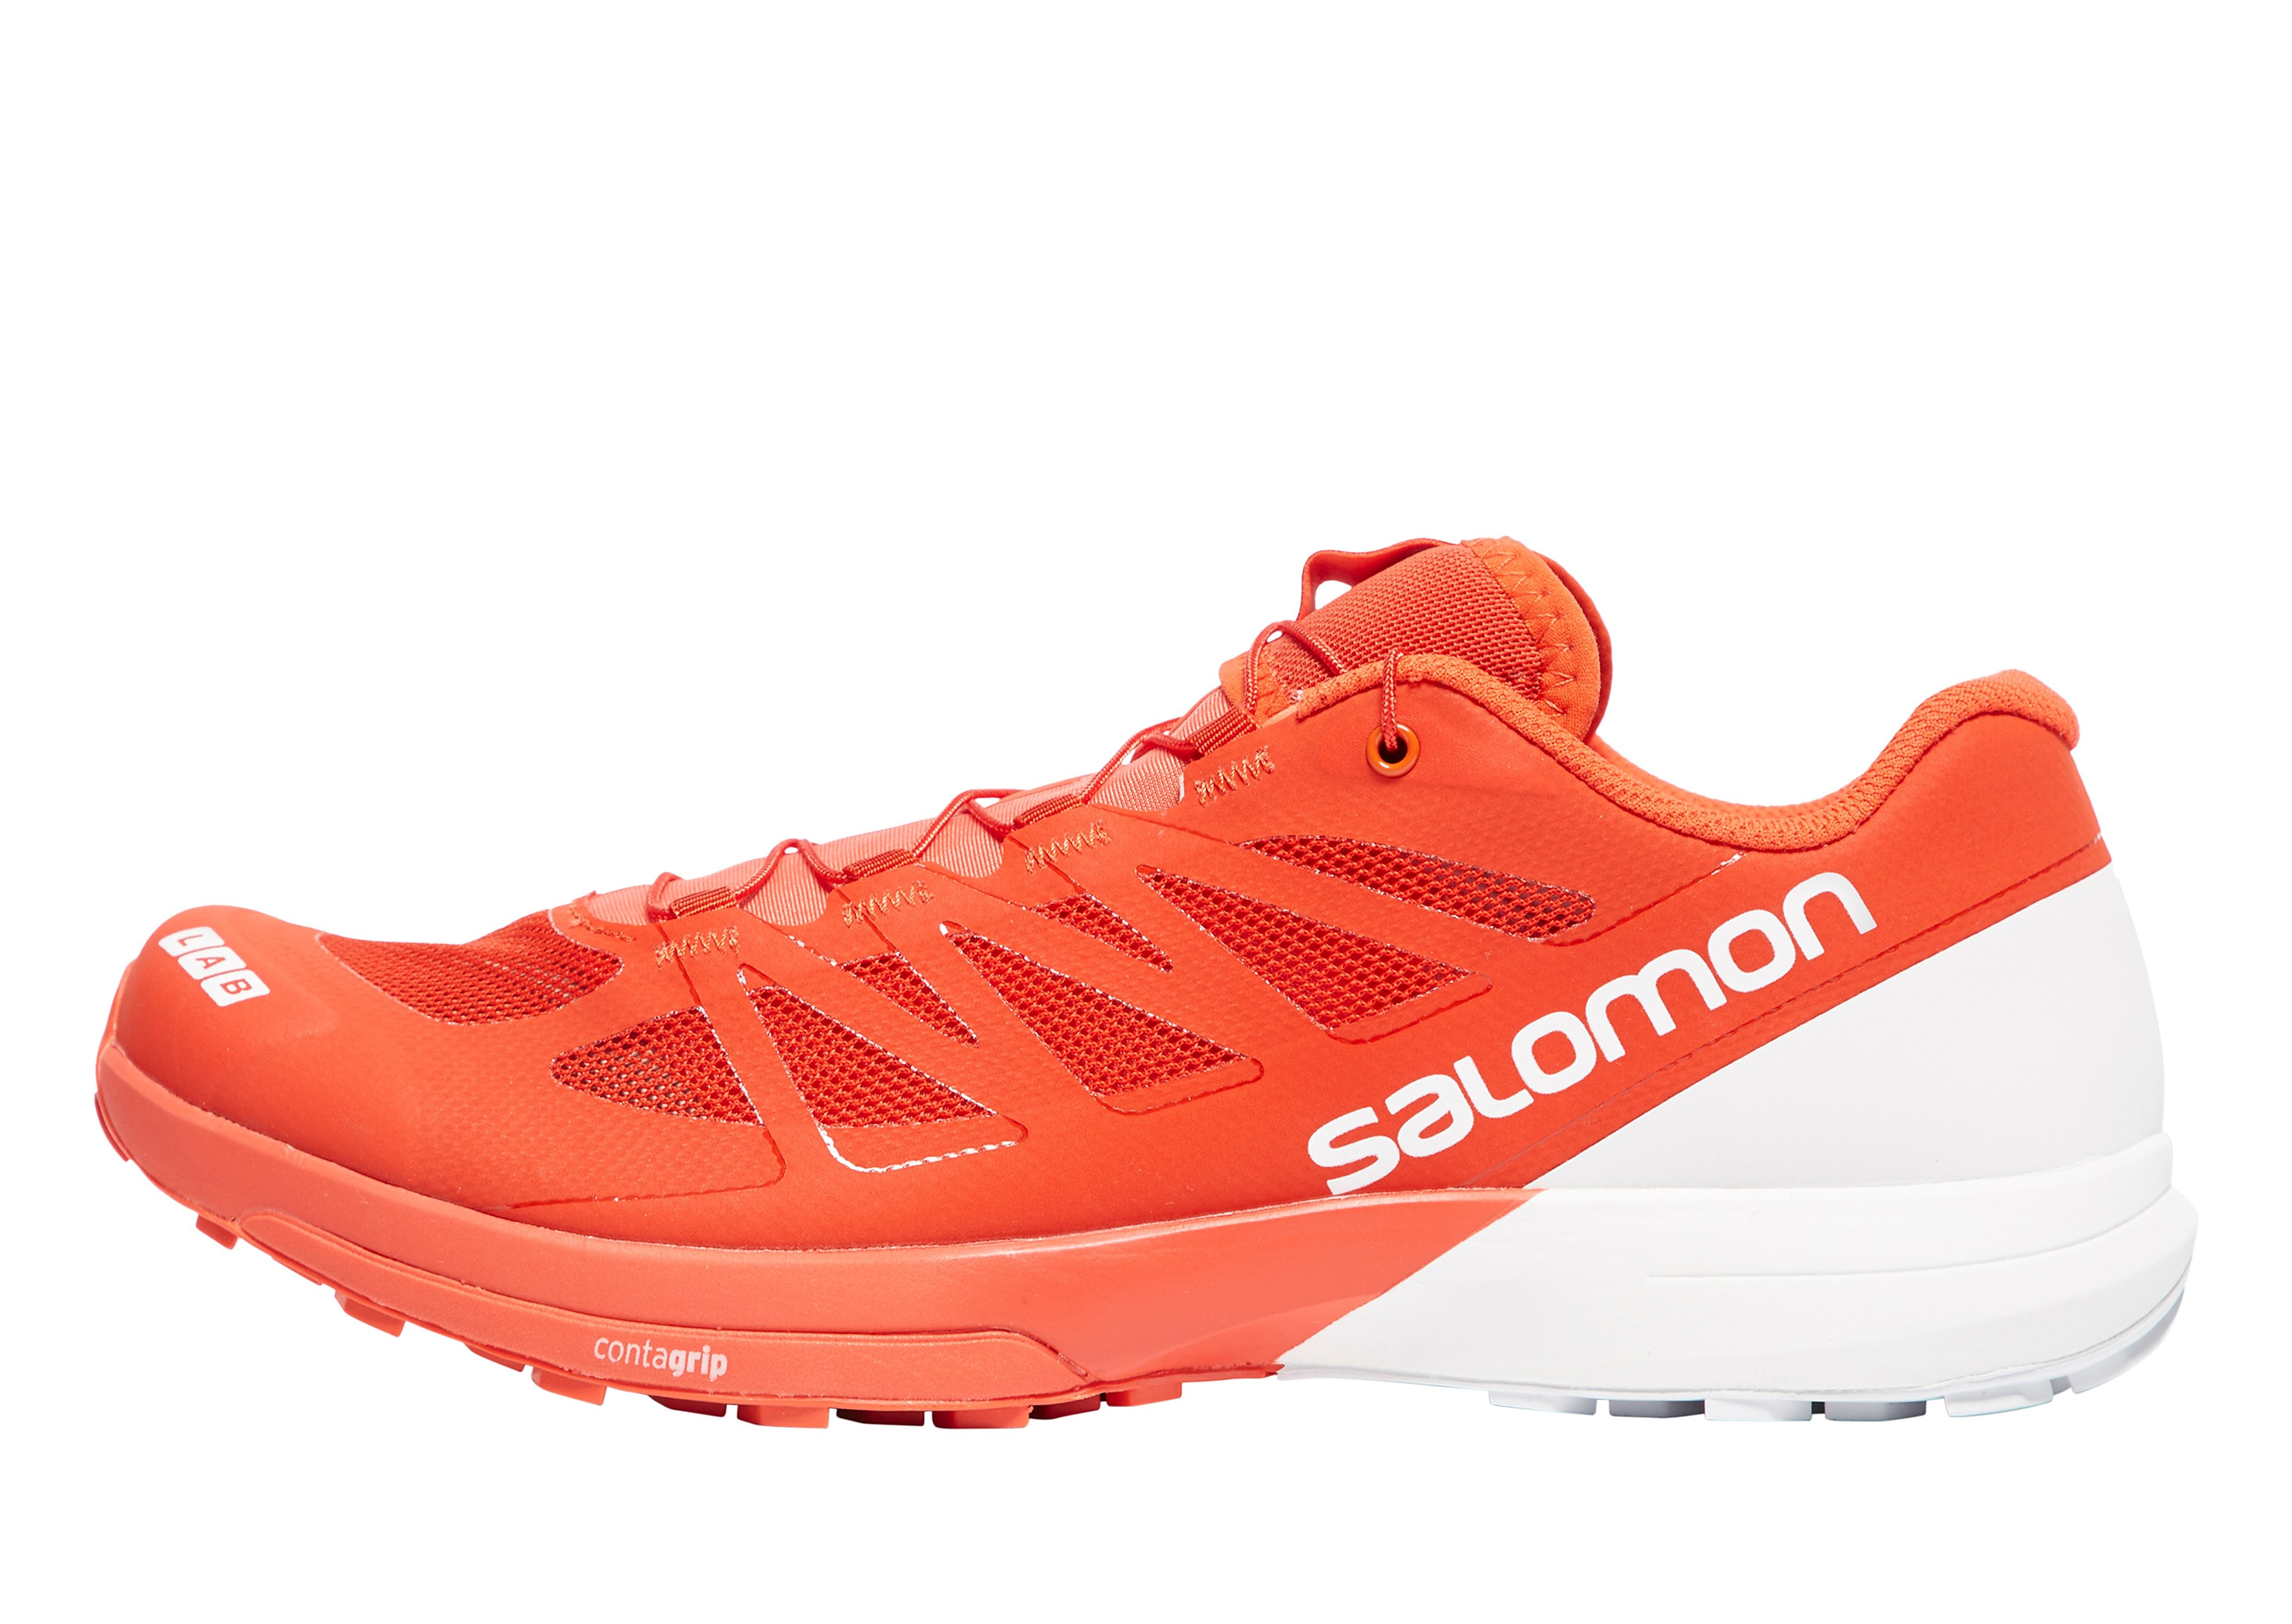 Salomon S-Lab Sense 6 Trail Running Shoes